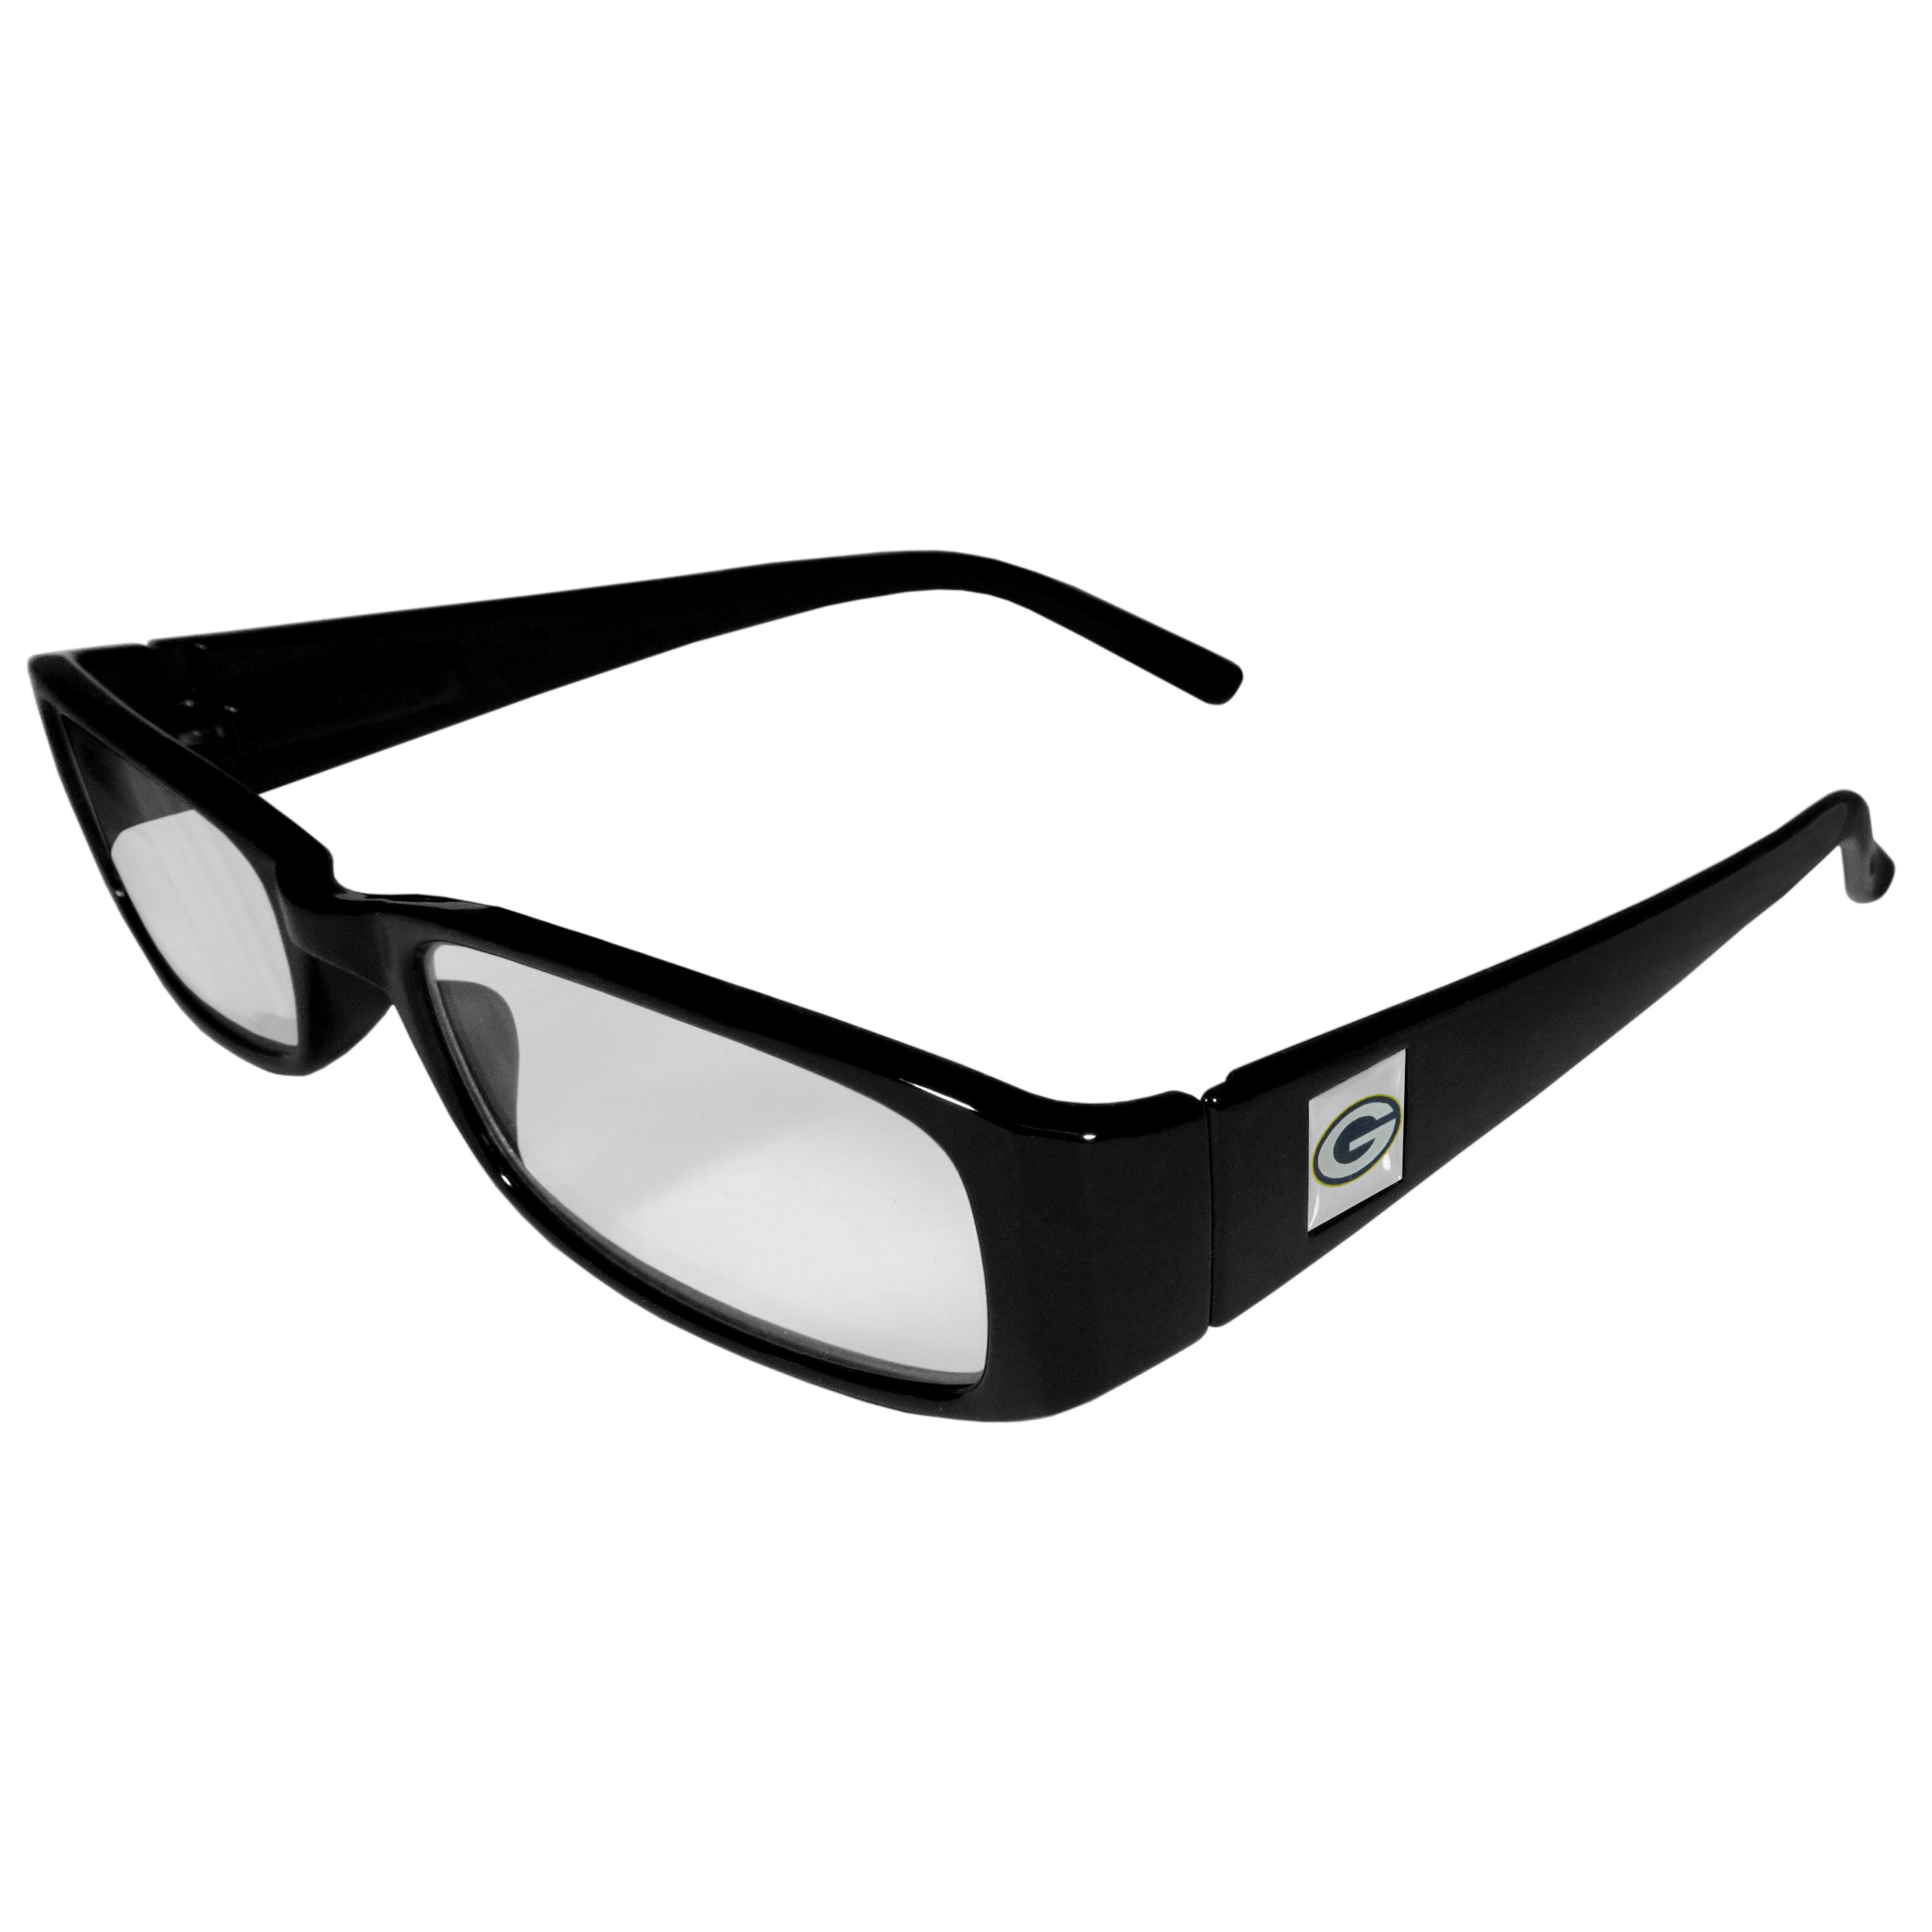 Green Bay Packers Black Reading Glasses +1.25 - Our Green Bay Packers reading glasses are 5.25 inches wide and feature the team logo on each arm. Magnification Power 1.25